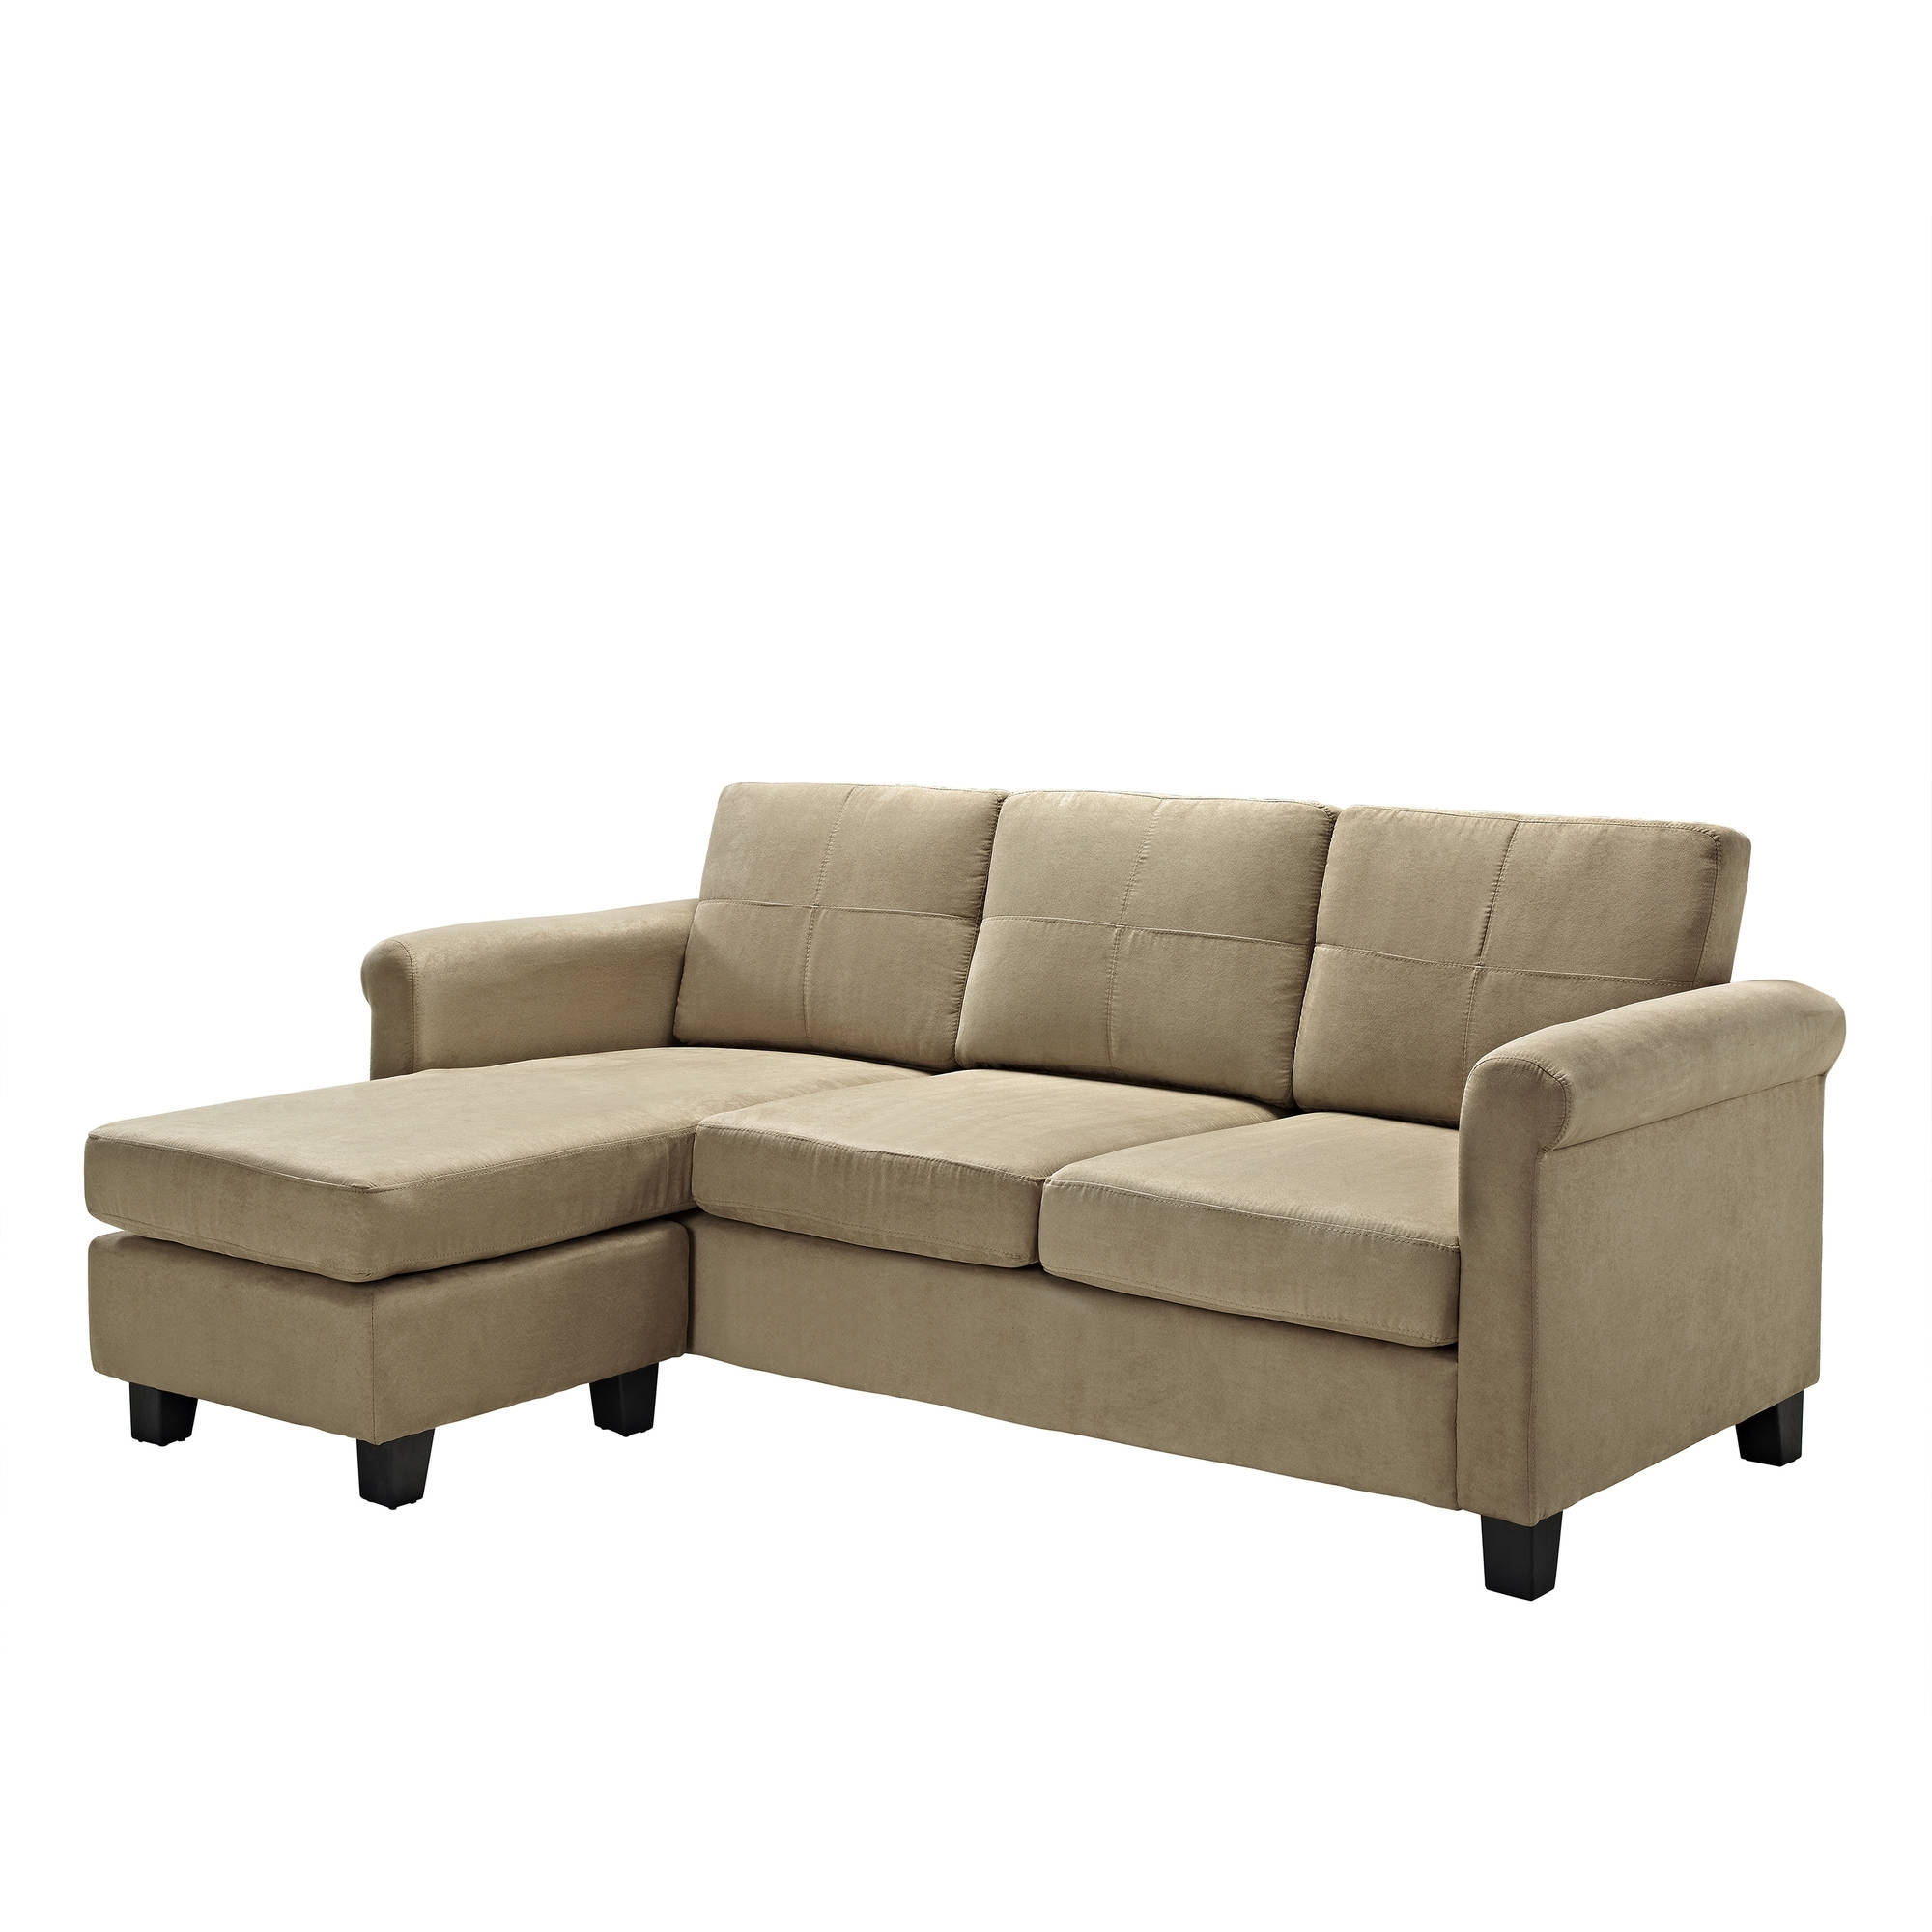 Recent Small Chaise Sofas Within Dorel Living Small Spaces Configurable Sectional Sofa, Multiple (View 7 of 15)